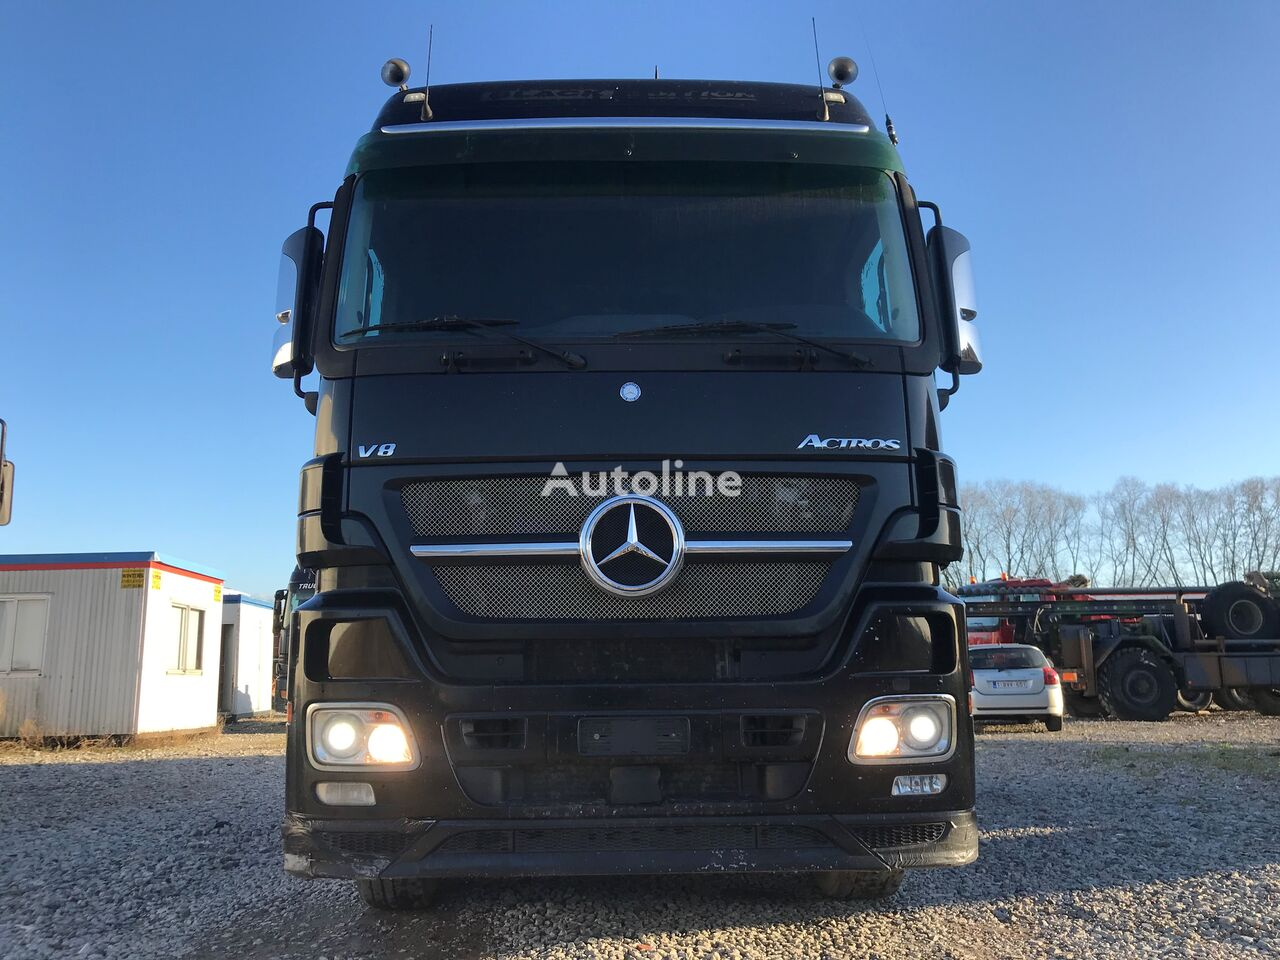 tracteur routier MERCEDES-BENZ Actros 1861 BLACK EDITION - 4x2 ///1 OF 250 IN THE WORLD///